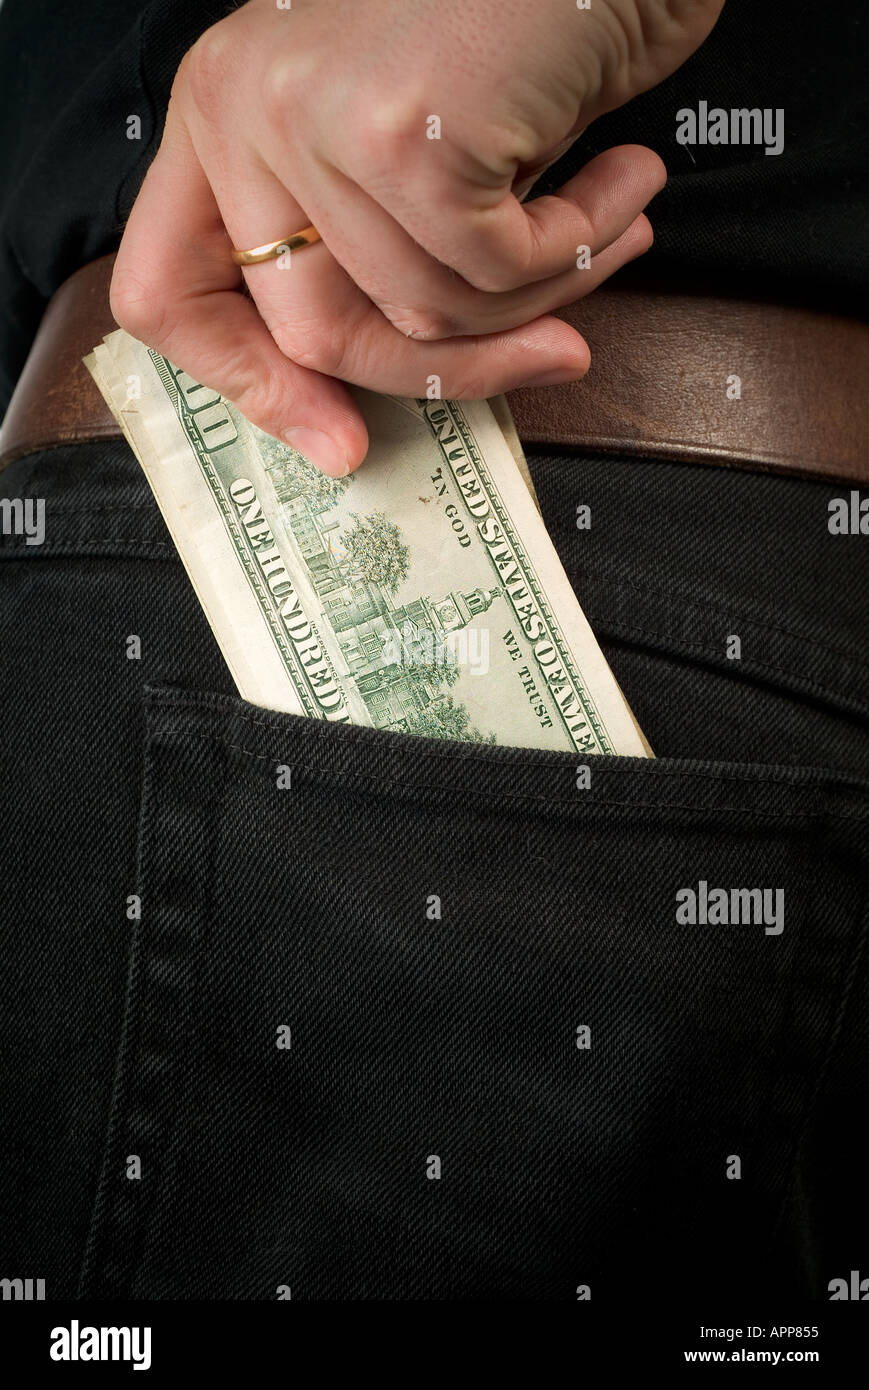 Cash money dough folding dollar pound exchange rate spend buy pay paid cash in hand money in pocket wallet fist full rich poor w - Stock Image